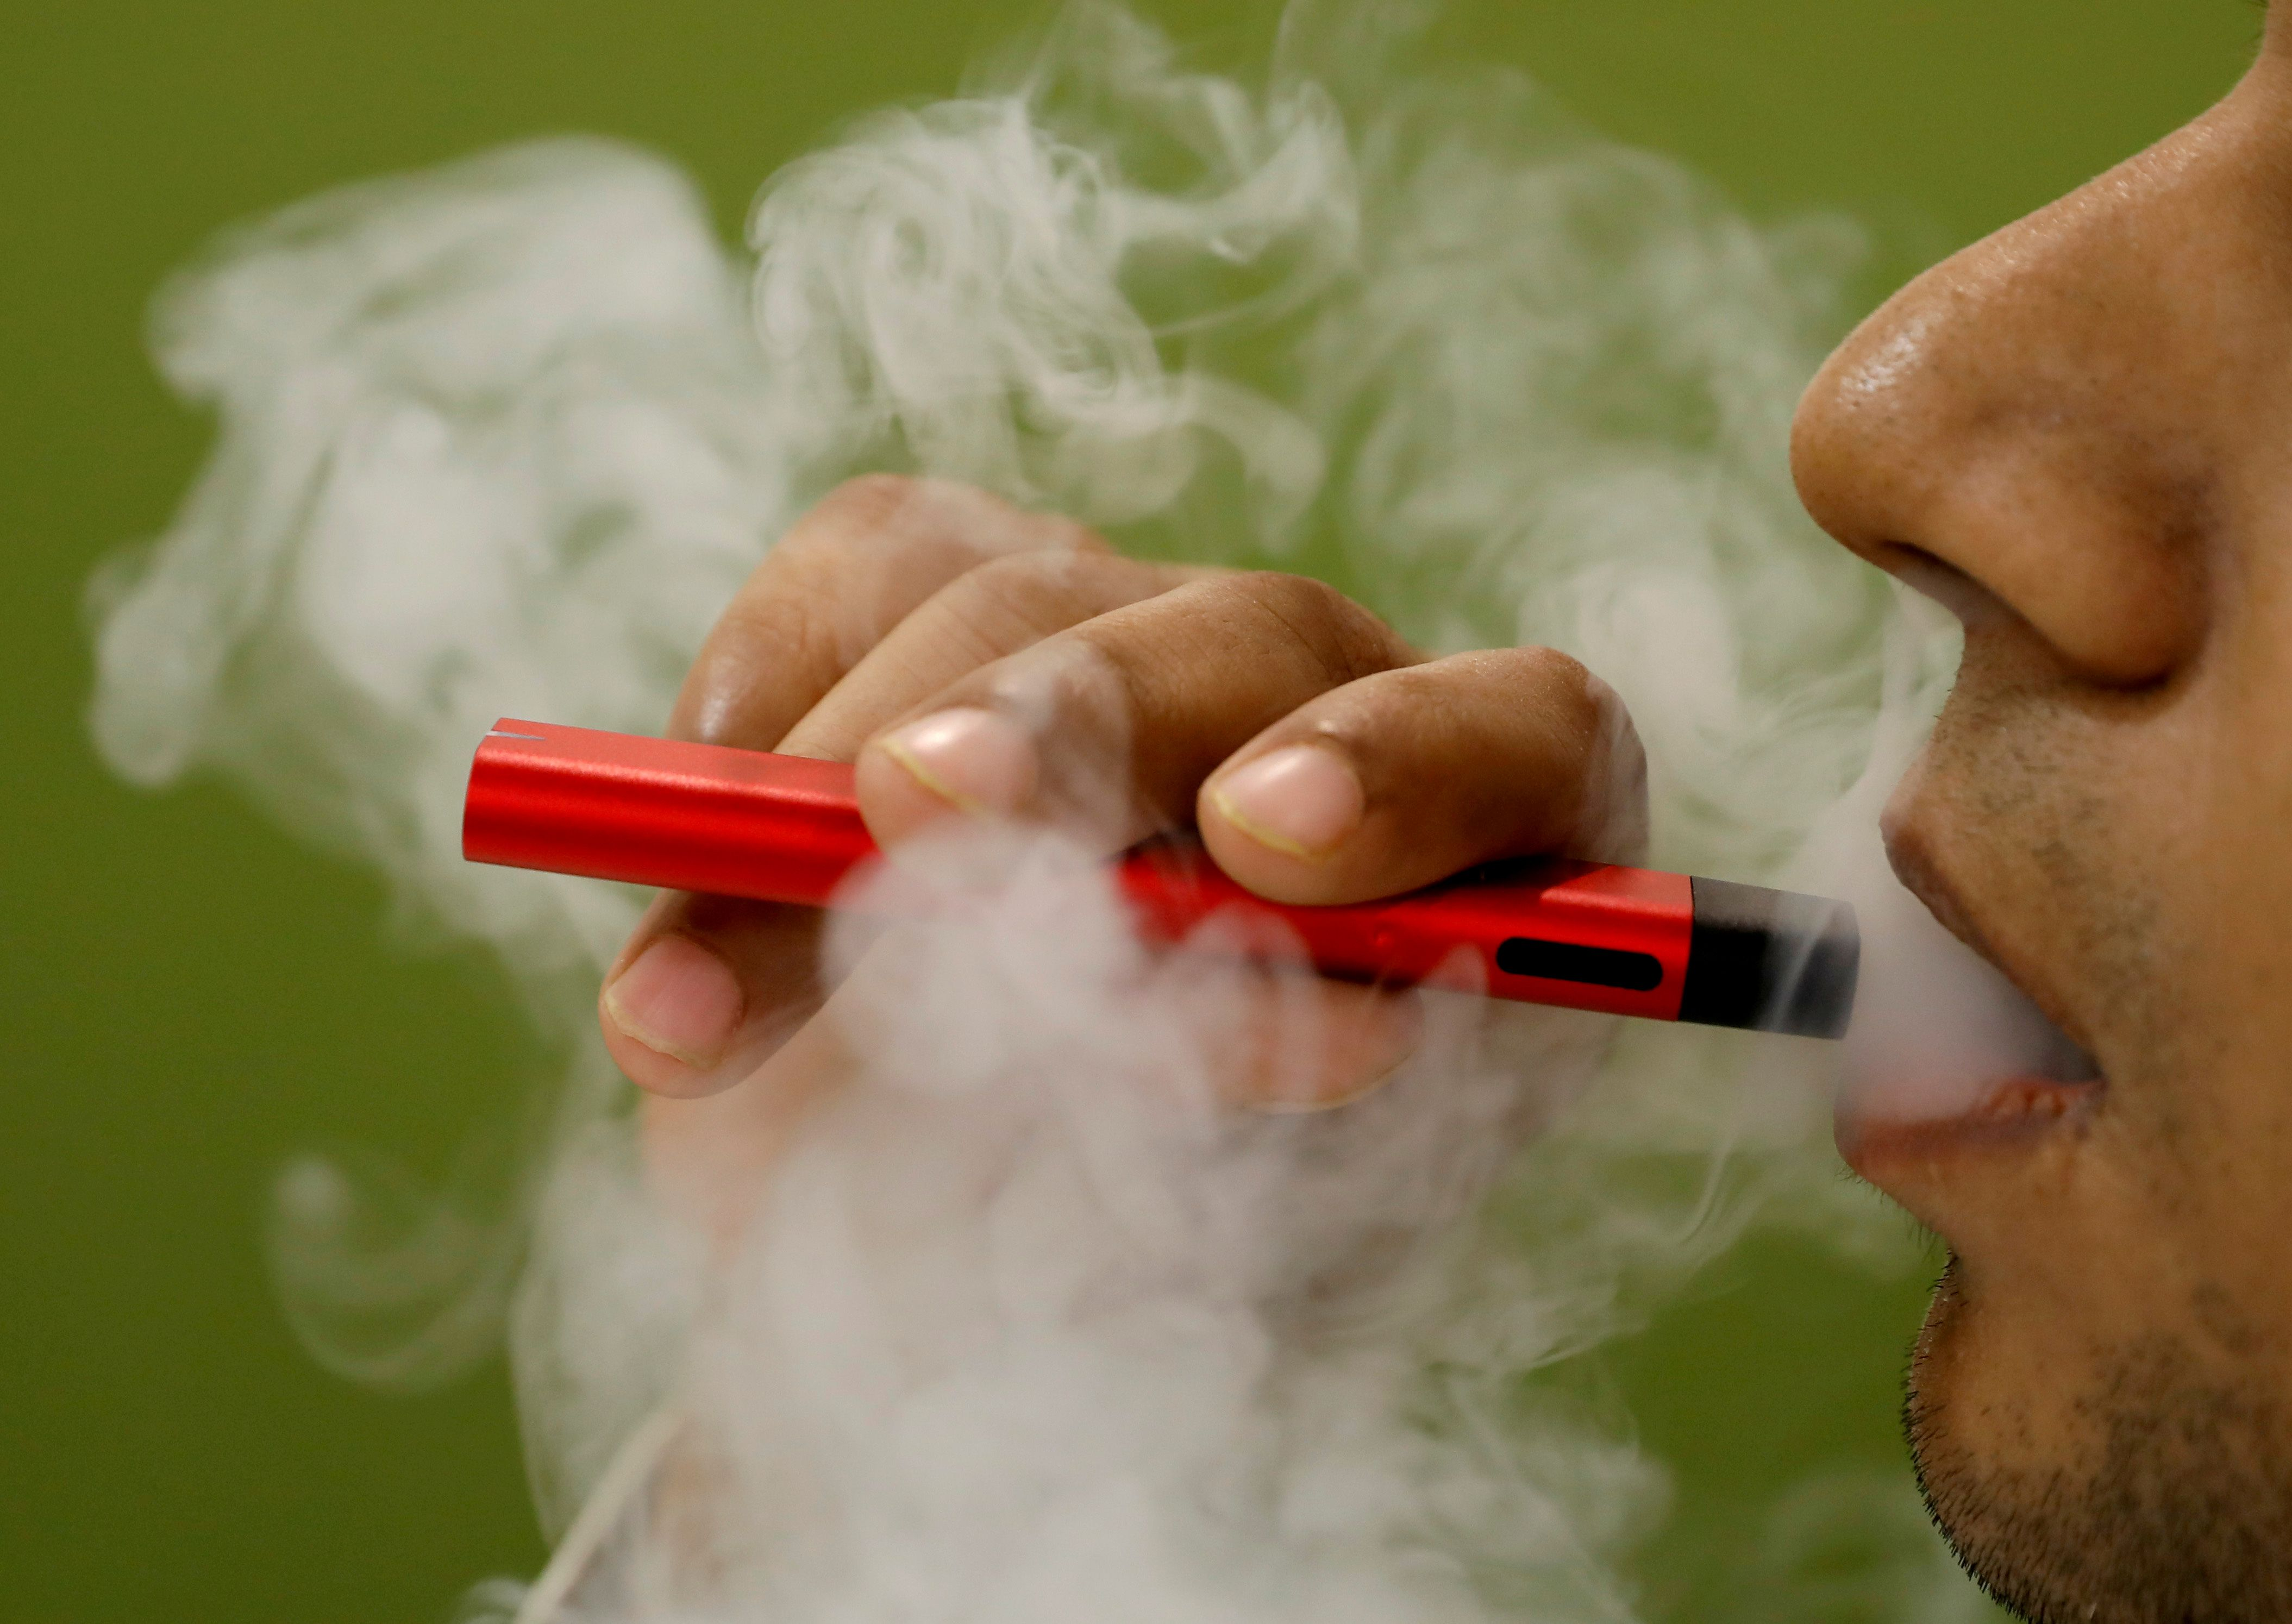 CDC says almost all vaping illness patients end up hospitalized | SD News